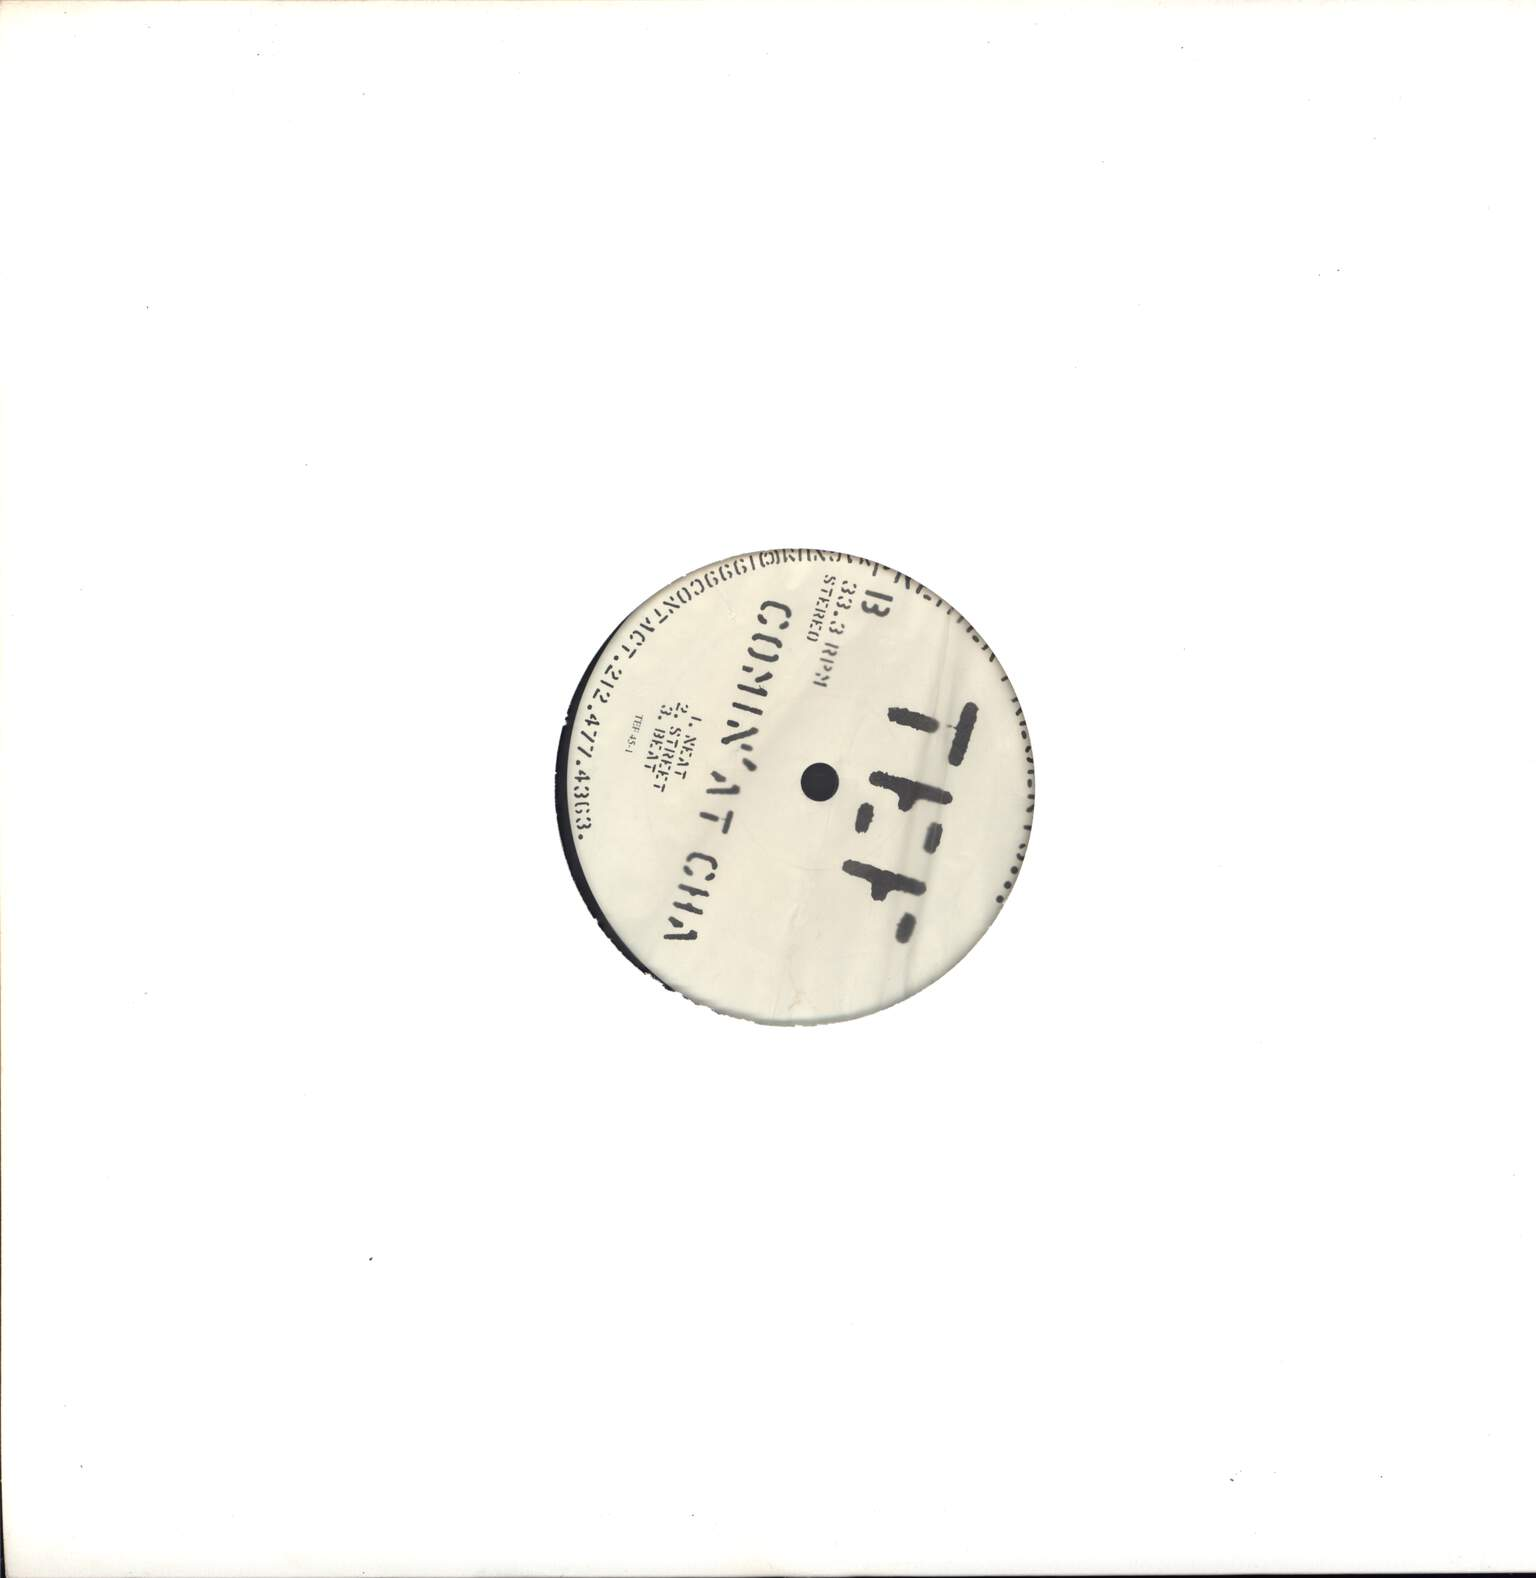 "Teflon: Premier Presents...: F-U / Comin' At Cha, 12"" Maxi Single (Vinyl)"